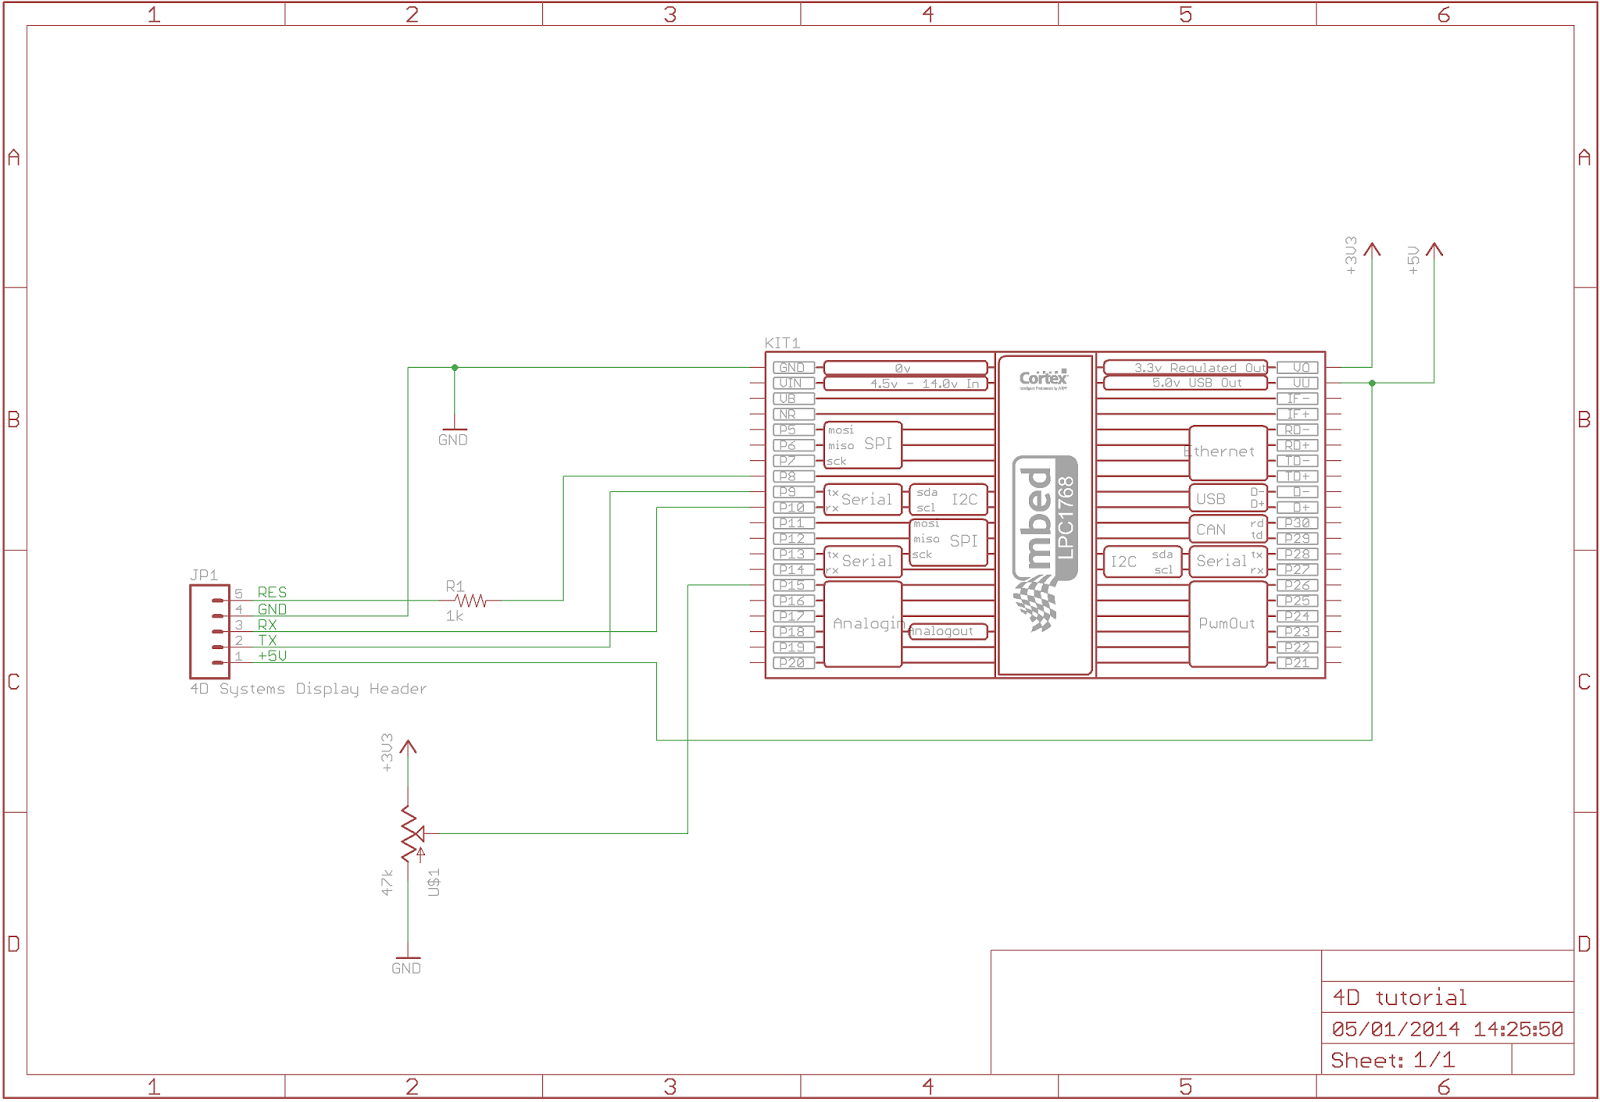 4D+tutorial+schematic 4d objects wiring diagrams wiring diagrams 4D Diagram Architecture at n-0.co